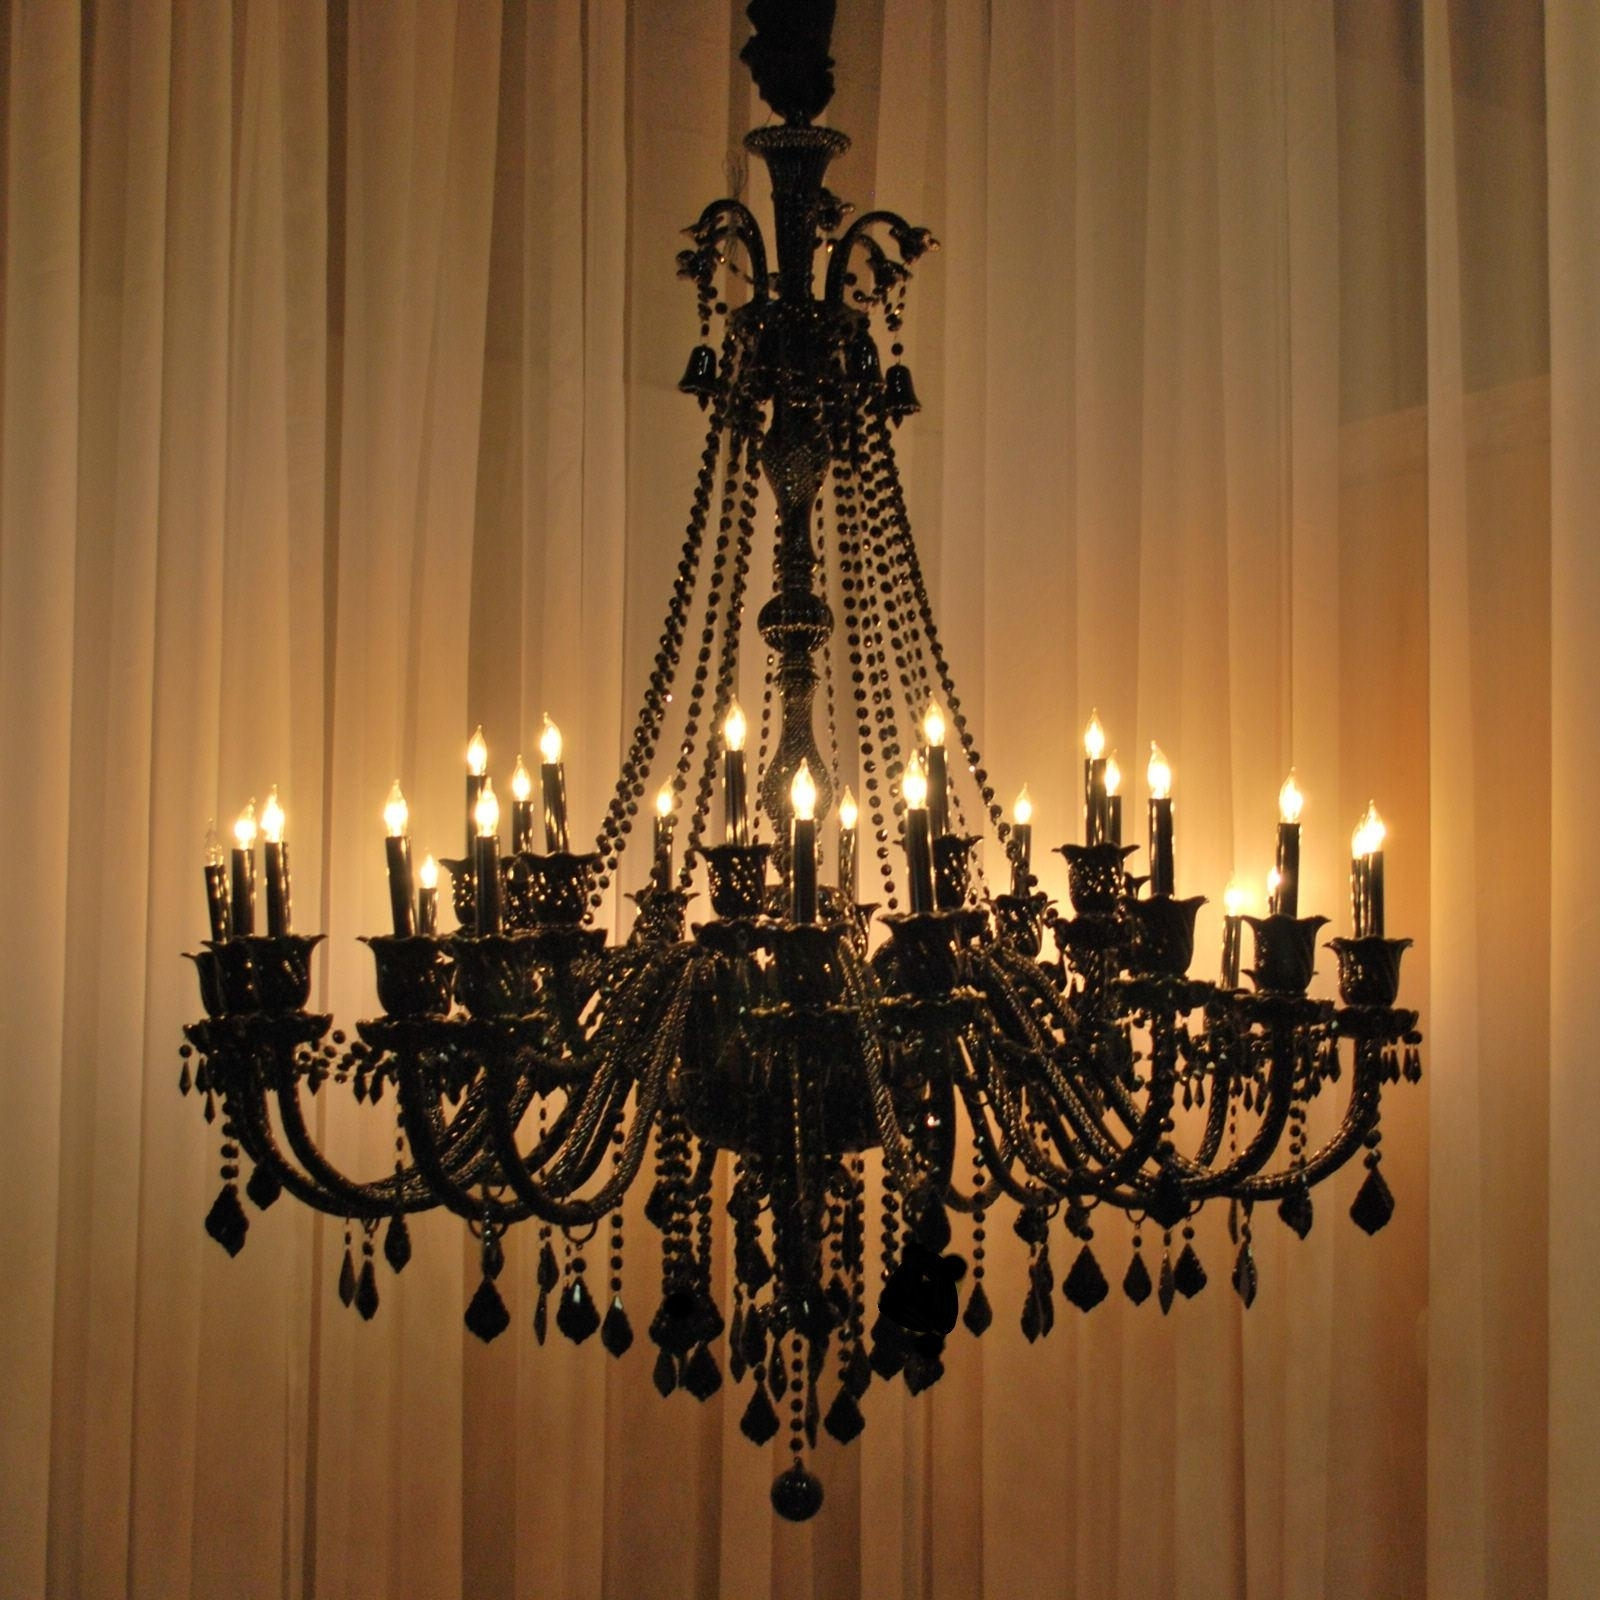 Famous Chandelier, Chandeliers, Crystal Chandelier, Crystal Chandeliers Pertaining To Giant Chandeliers (View 3 of 20)